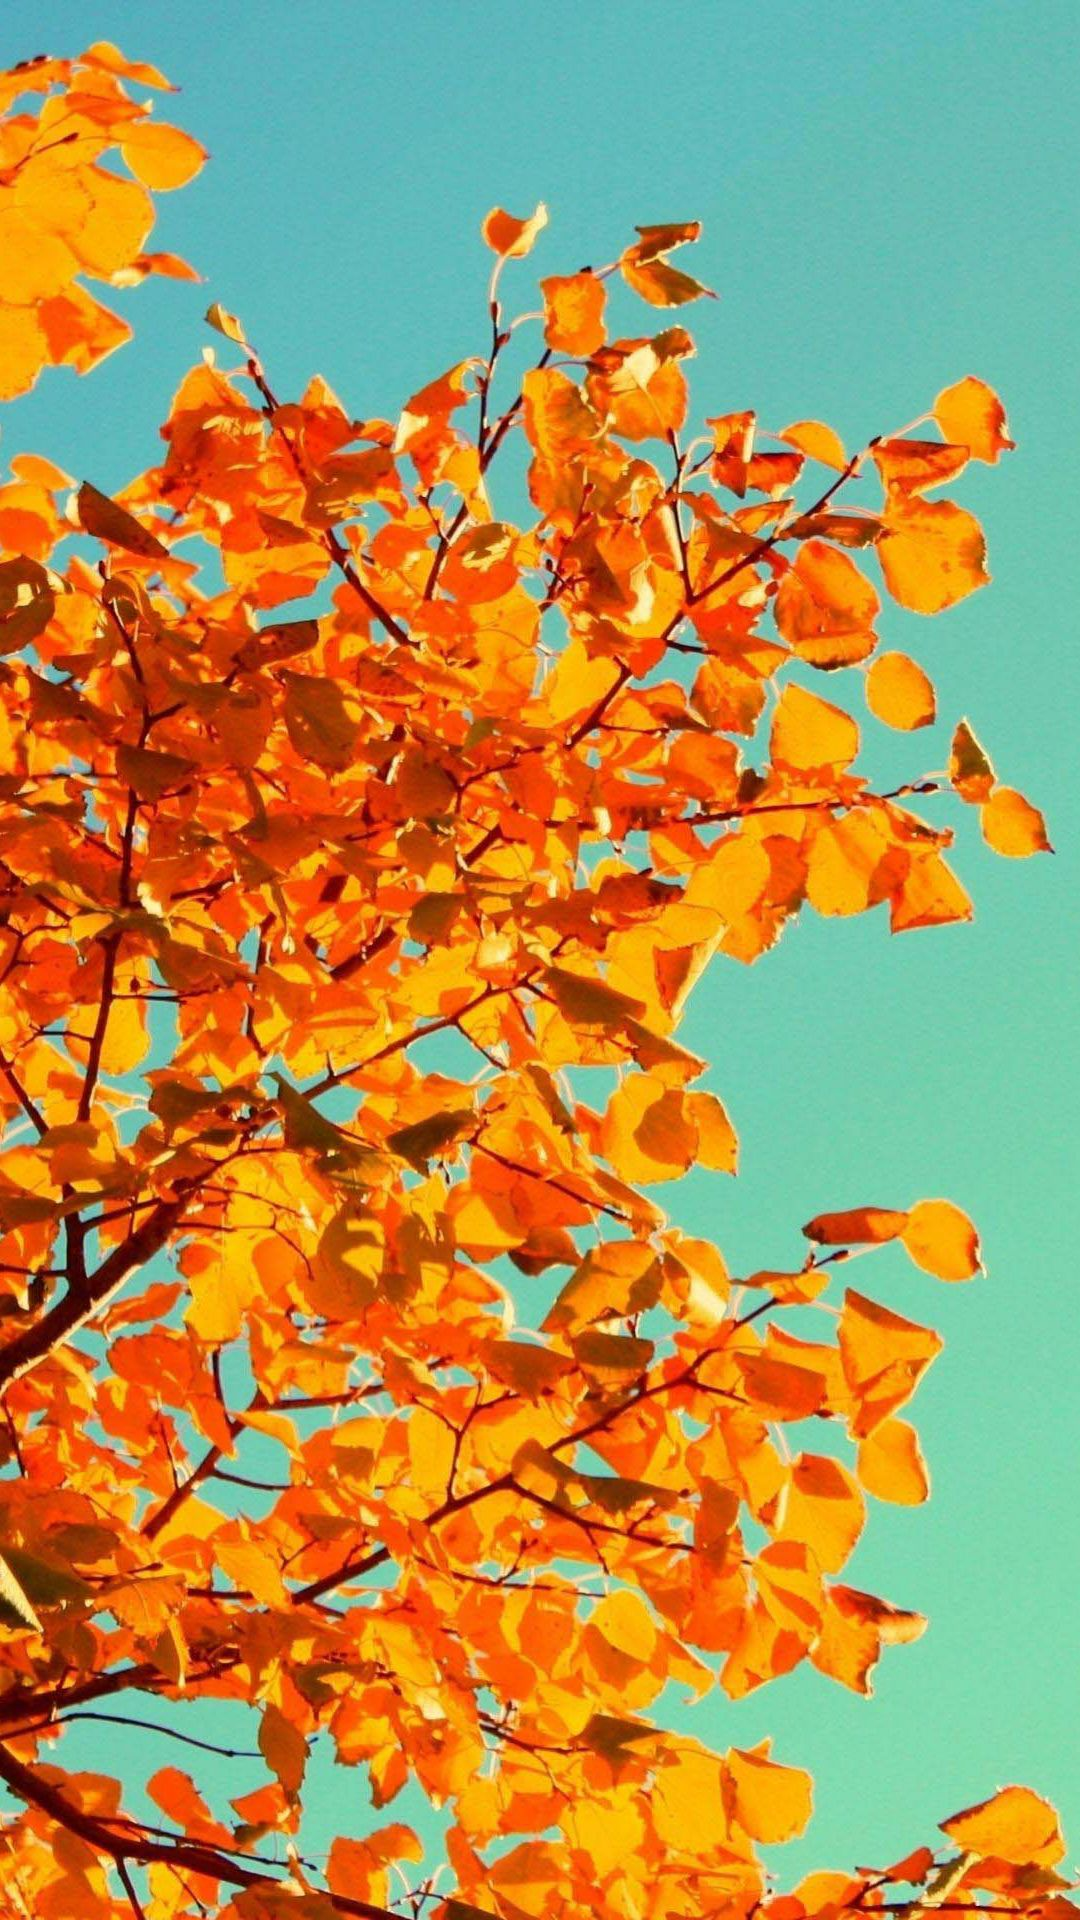 Iphone wallpaper tumblr fall - Fall Tree Art Iphone 5s Wallpaper Download Iphone Wallpapers Ipad Wallpapers One Stop